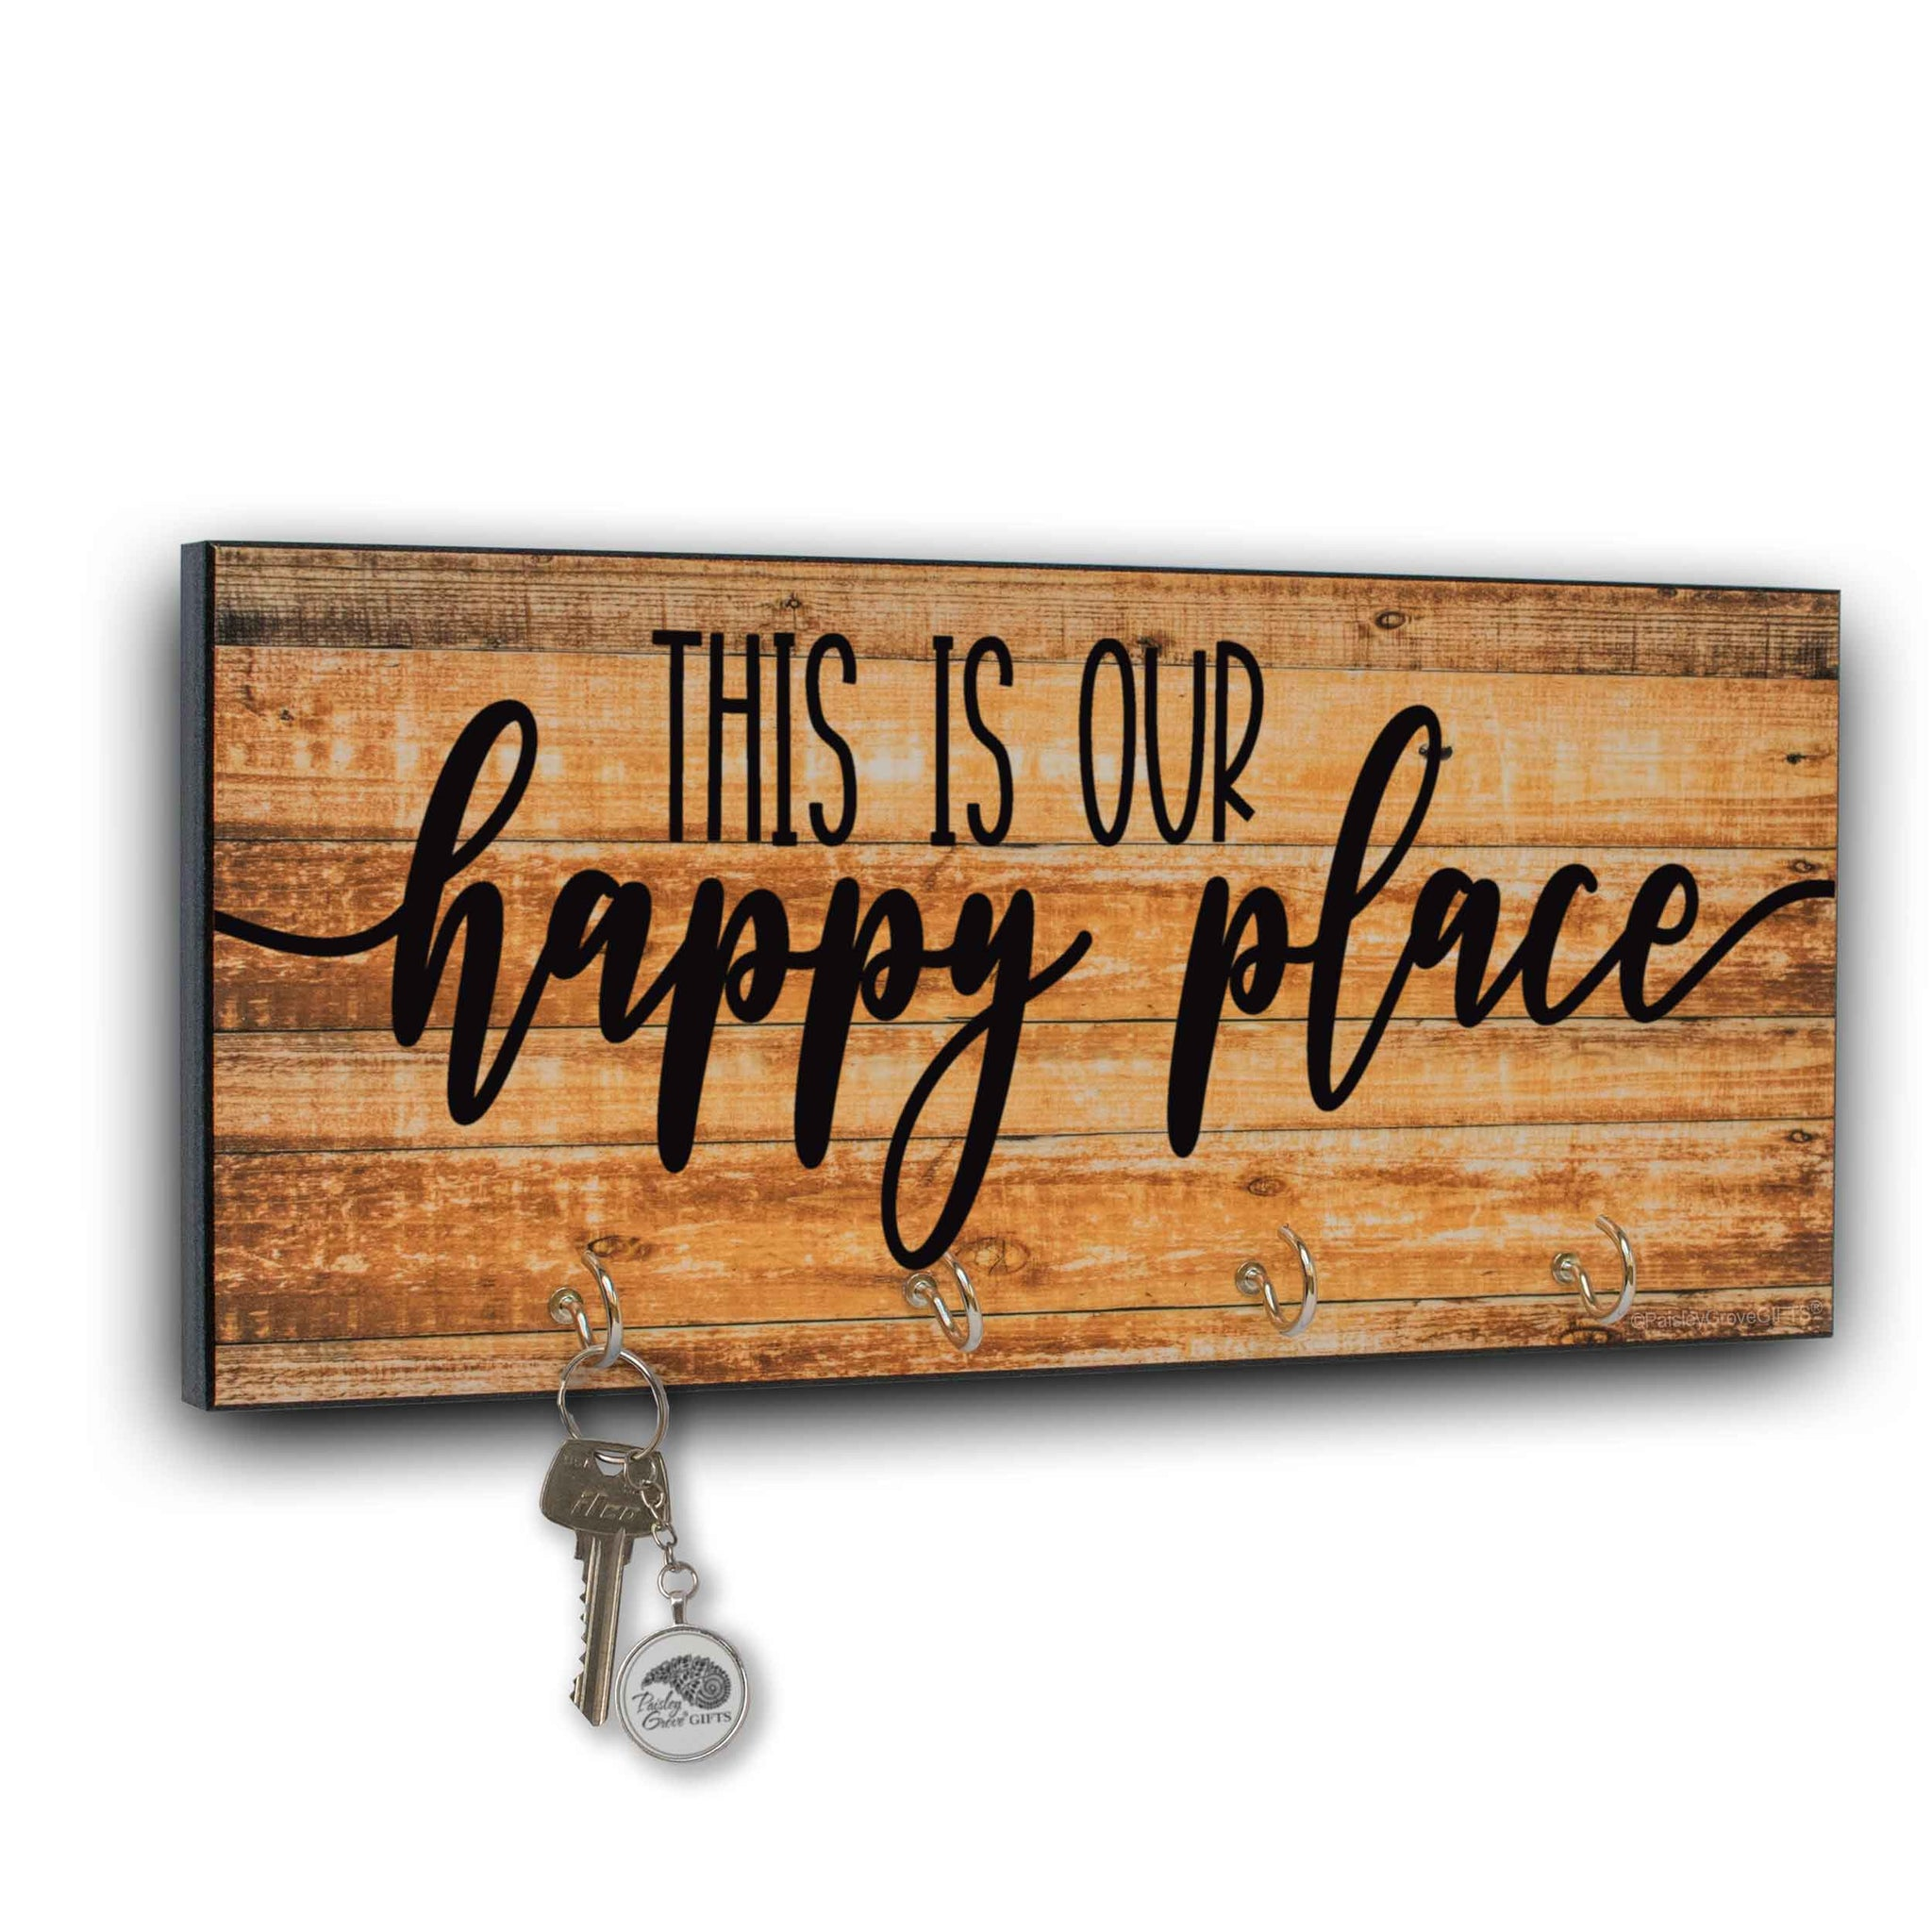 This is Our Happy Place Key Holder for Wall - S300b